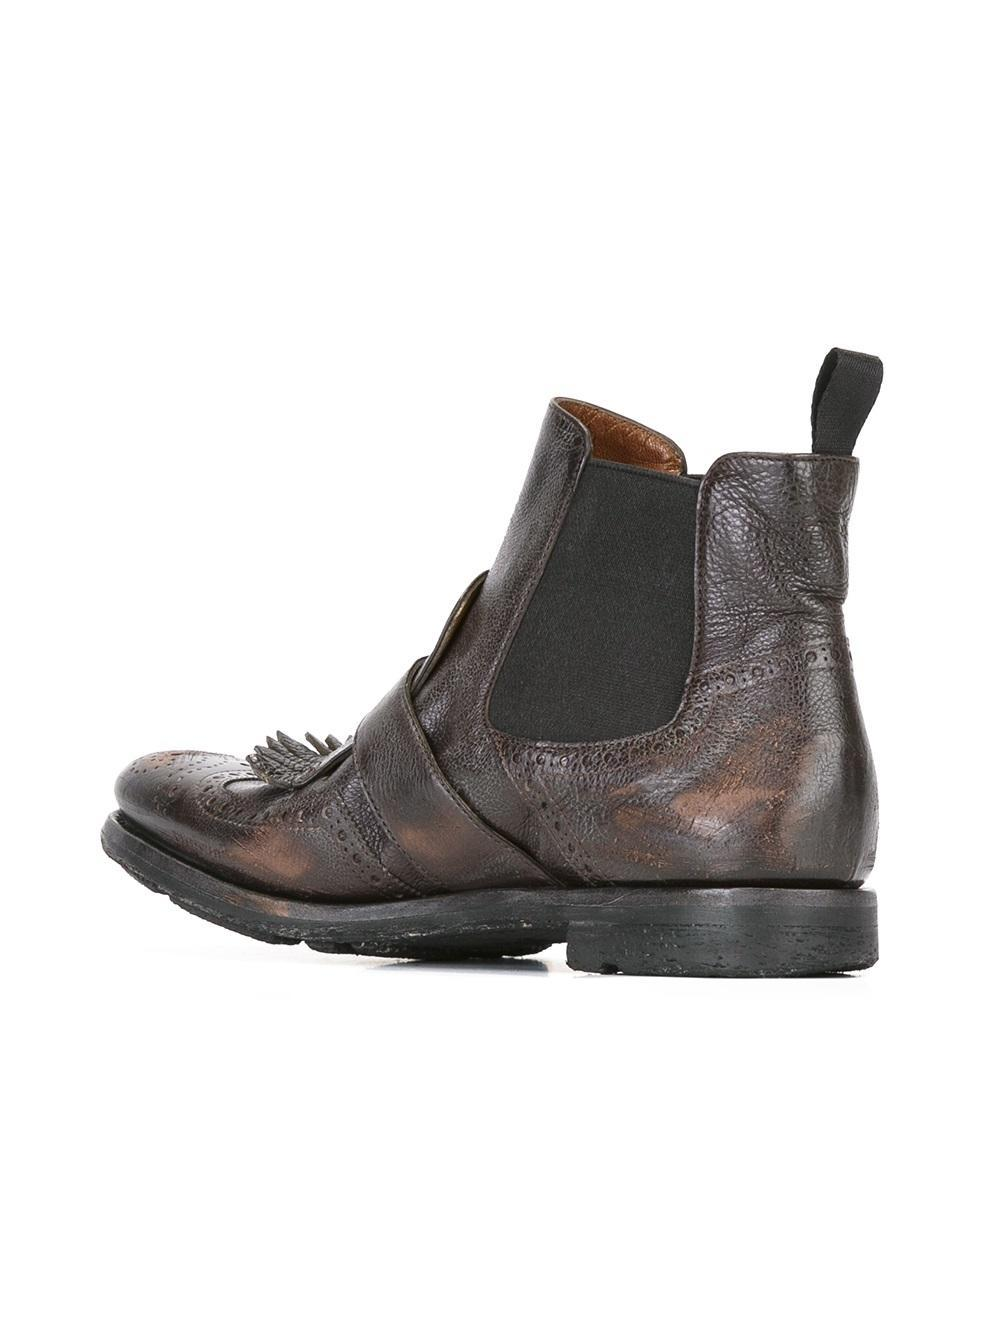 Church's Leather 'shanghai' Chelsea Boots in Brown